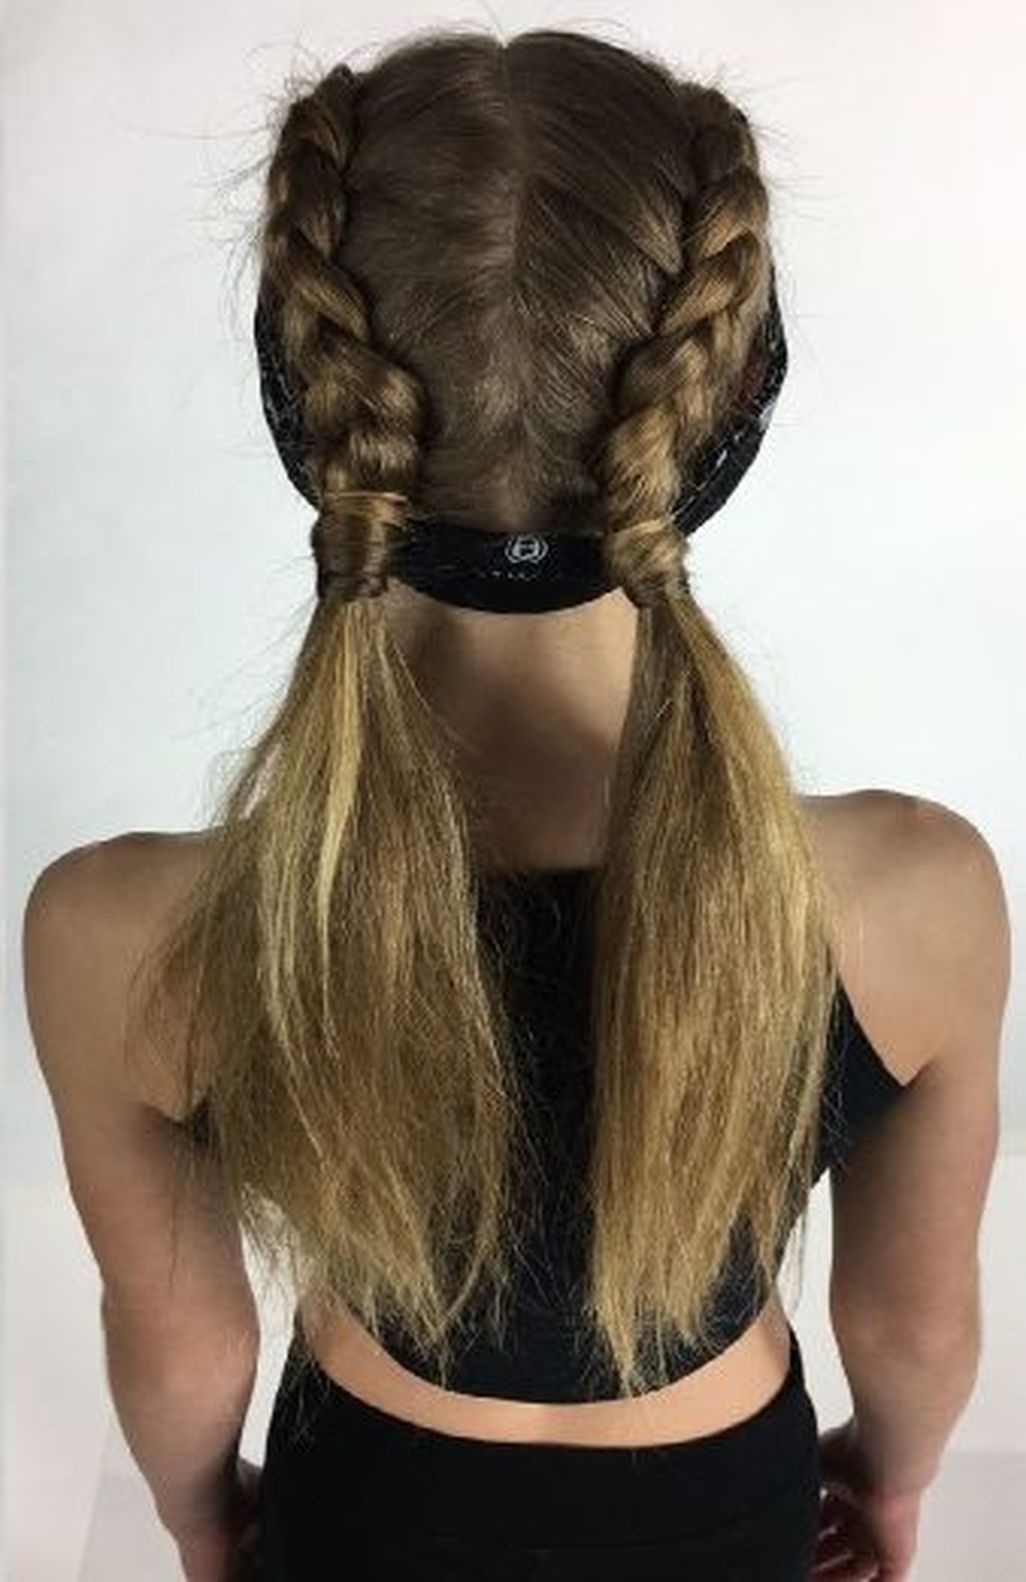 40 stunning halloween hairstyle ideas for women | hip hop